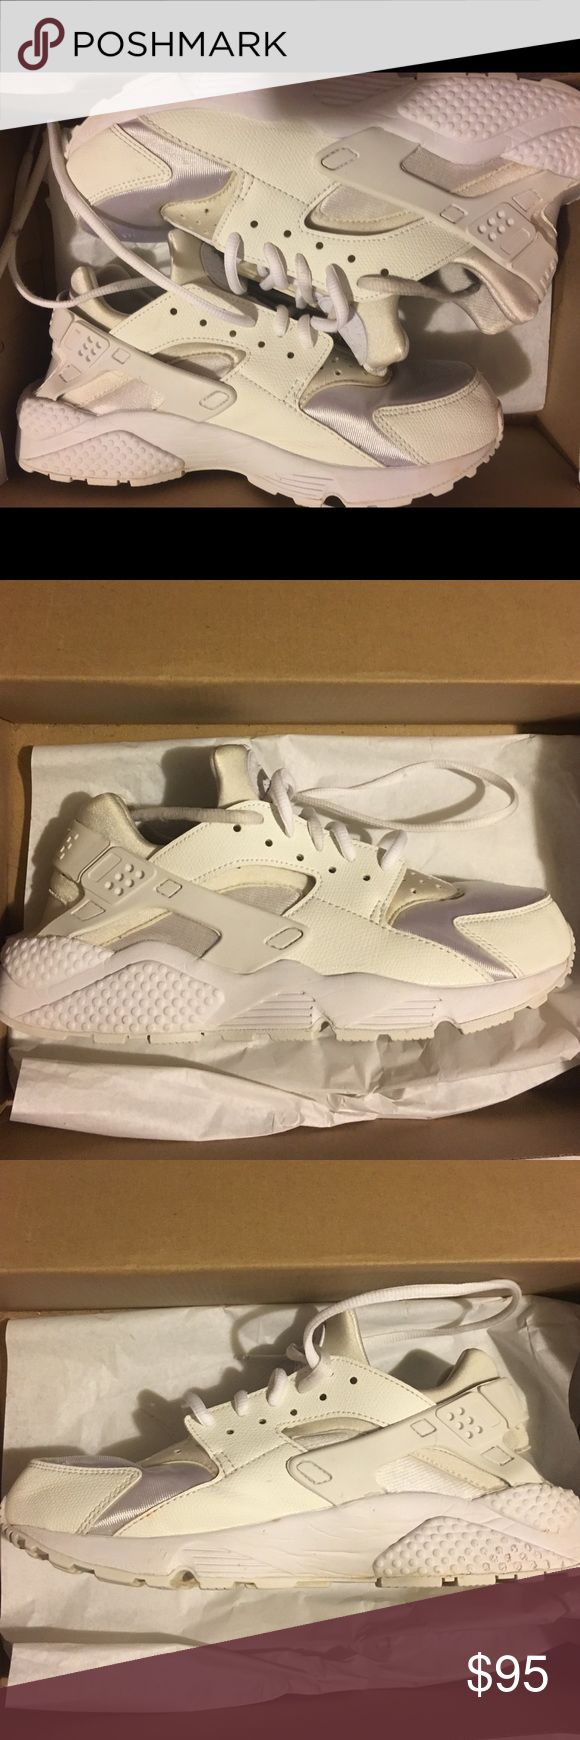 Women's Triple white Huarache Runs Like New missing one sole.                               This size runs small the size is a 9 but will fit a 8 in womens Nike Shoes Sneakers